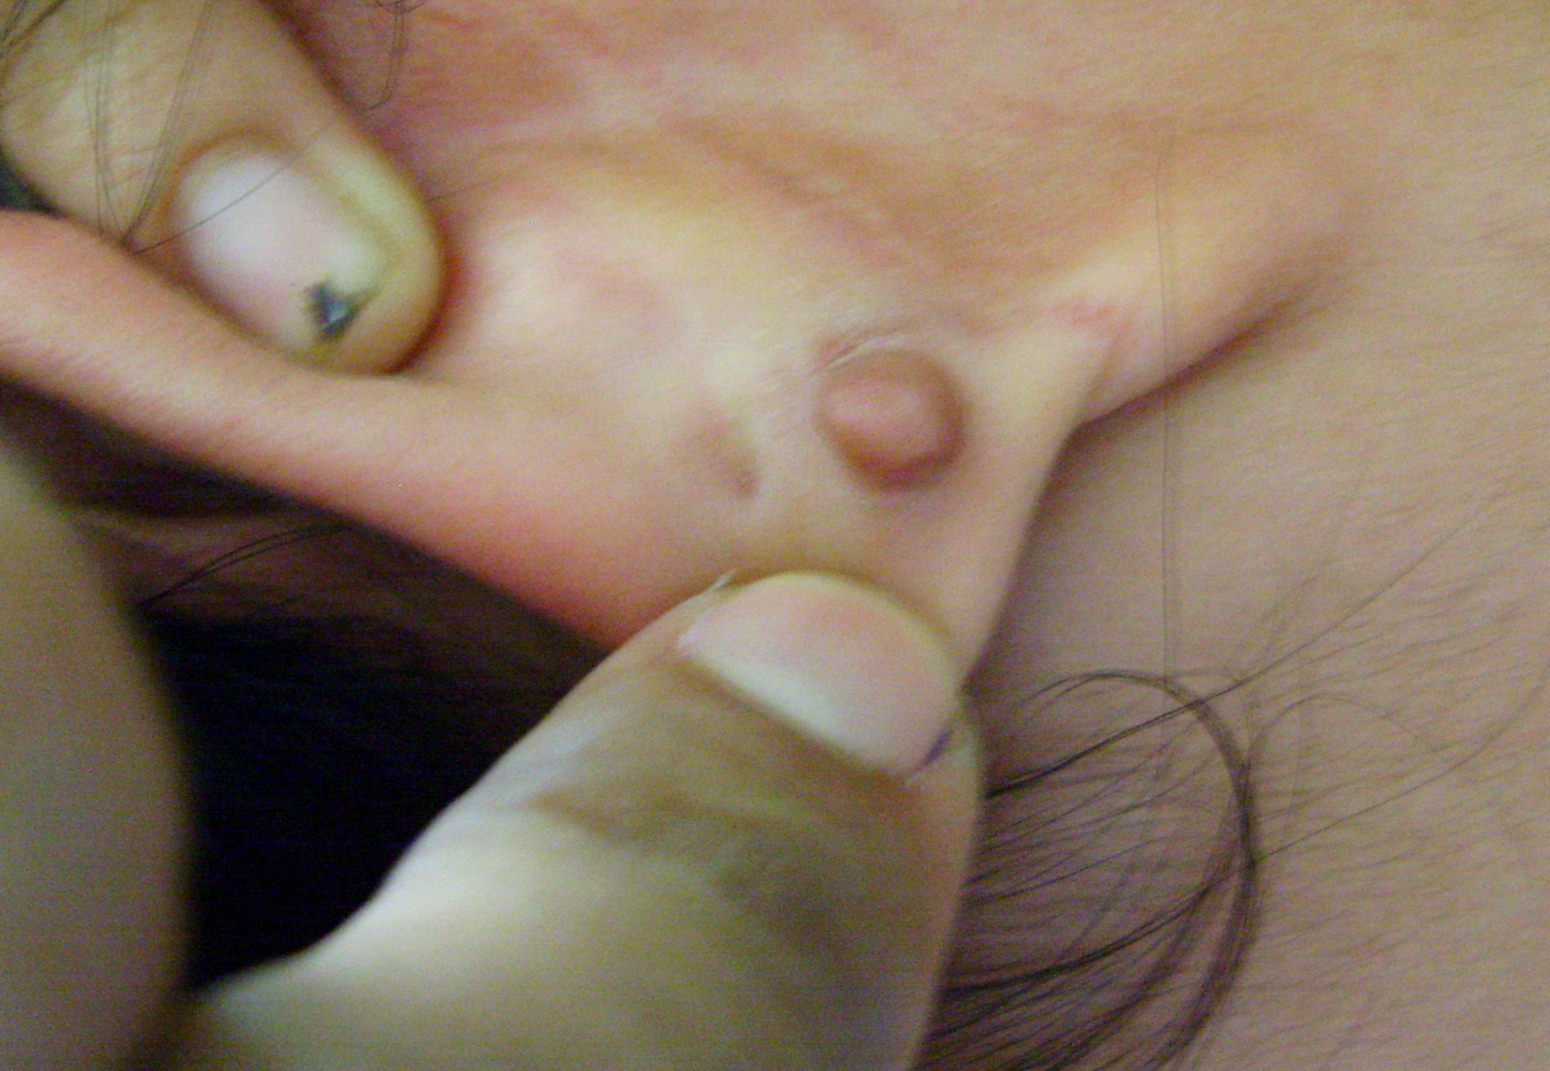 Ear Lobe keloid - Post piercing